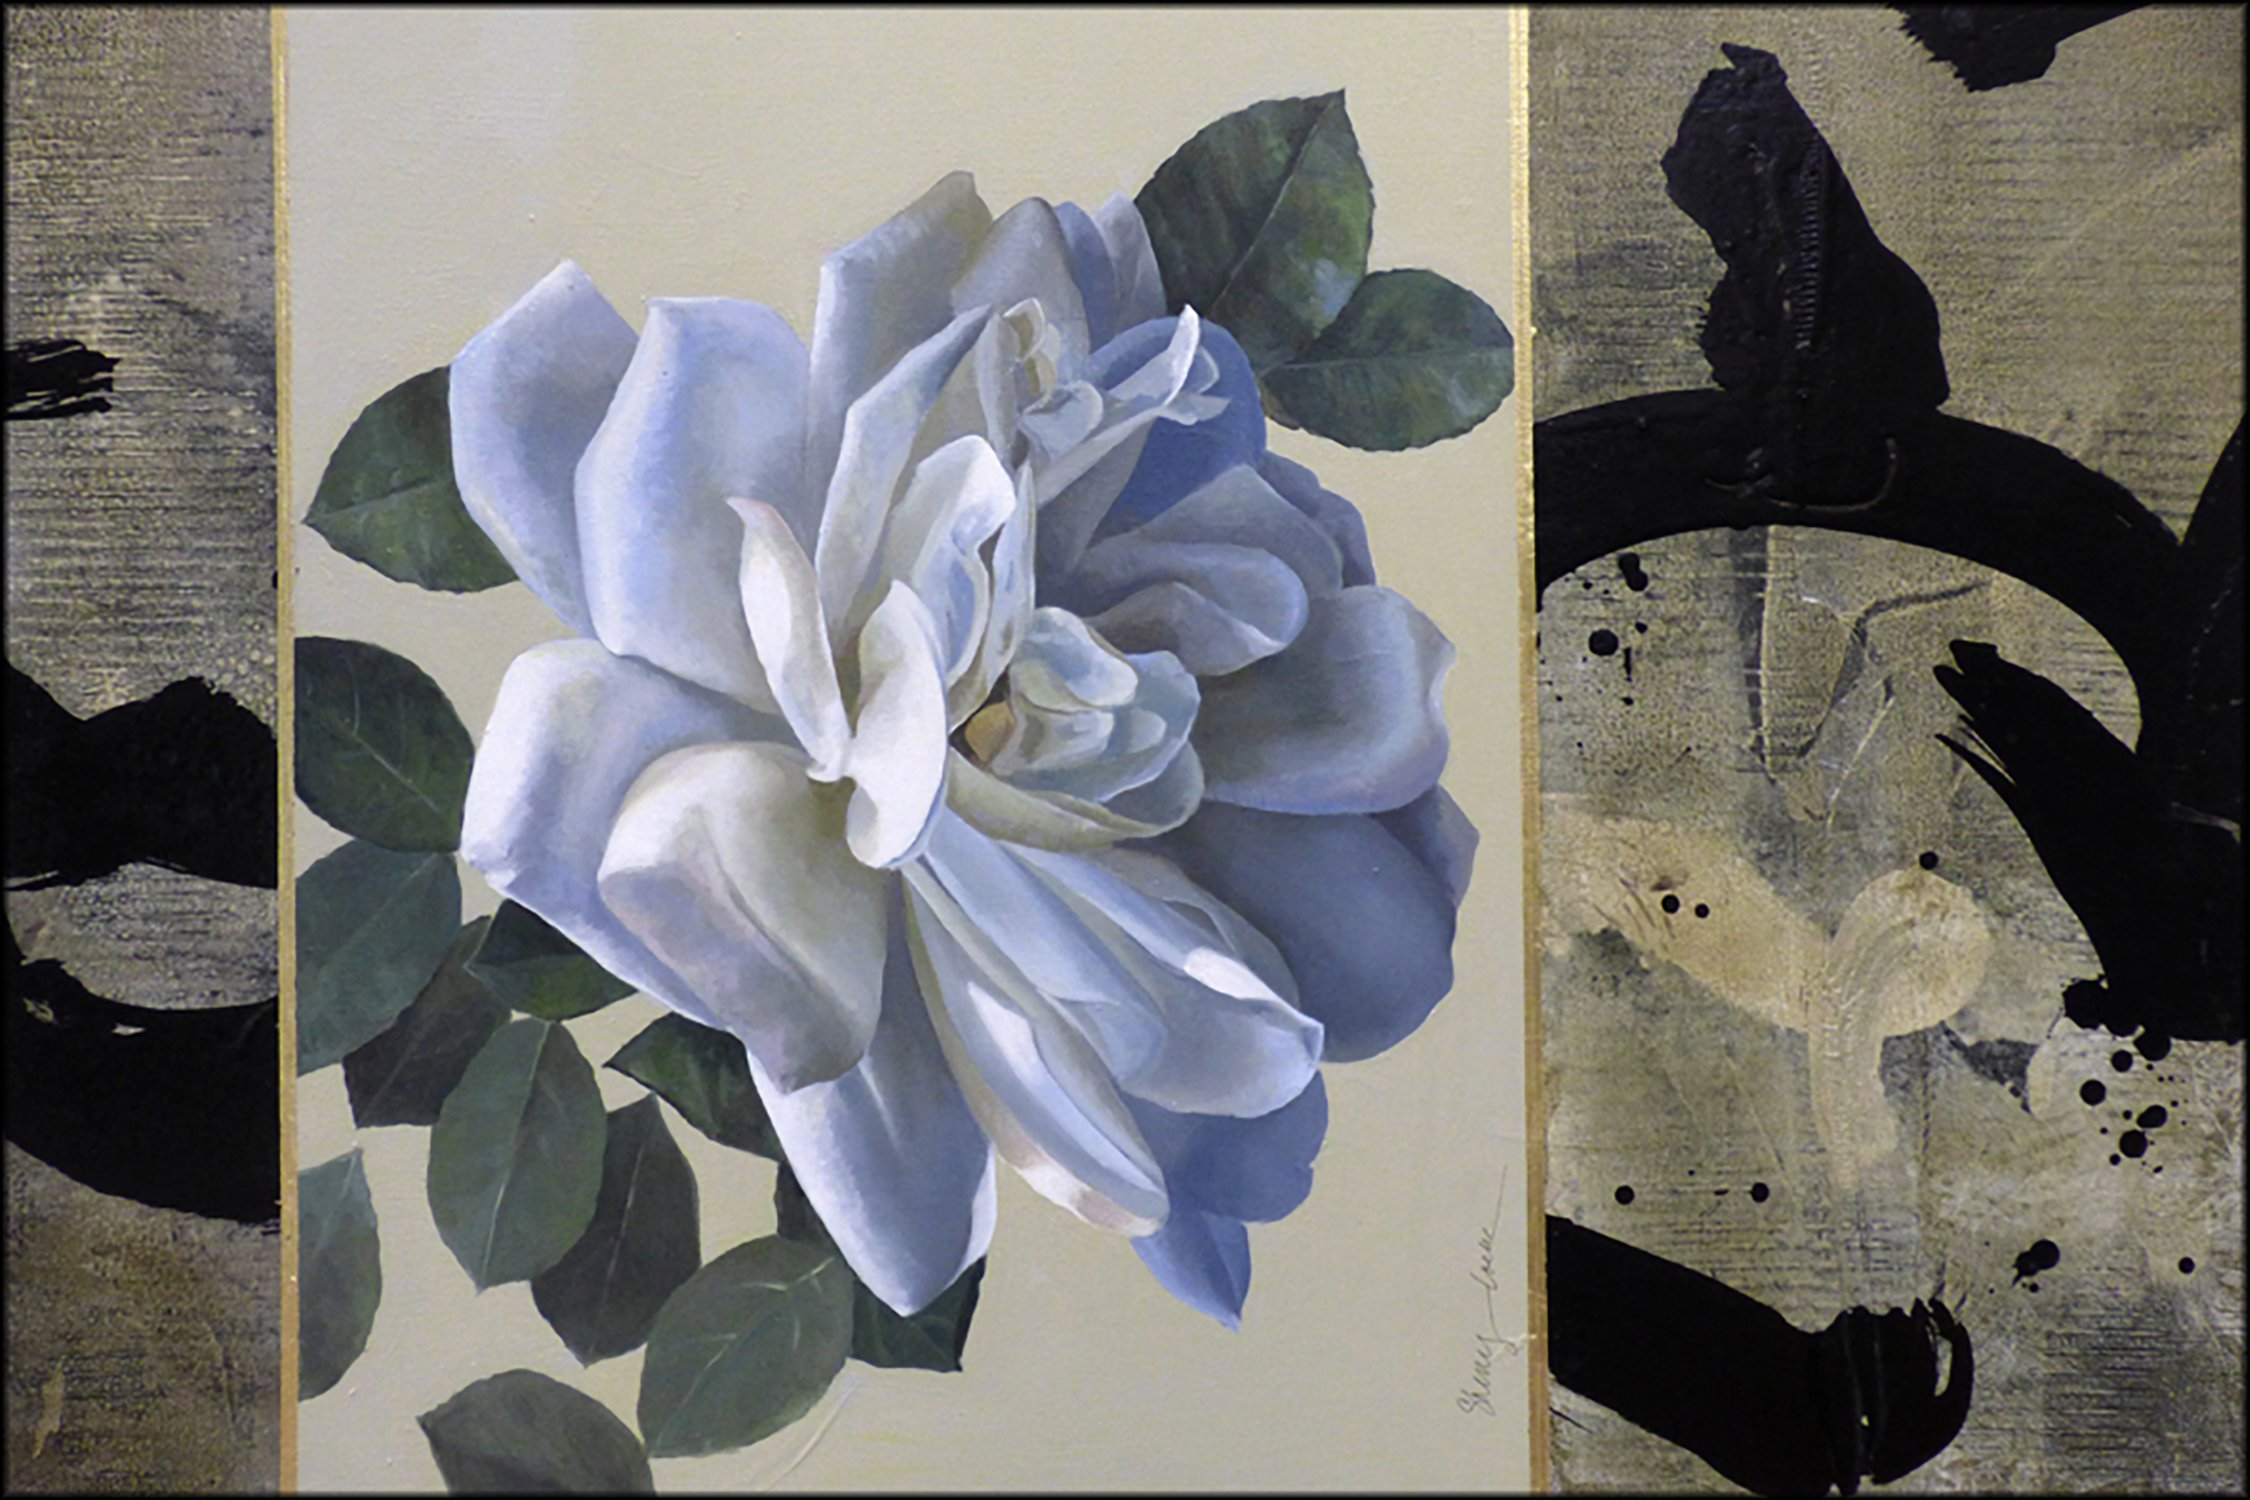 _Sumi Rose_ by Sherry Loehr